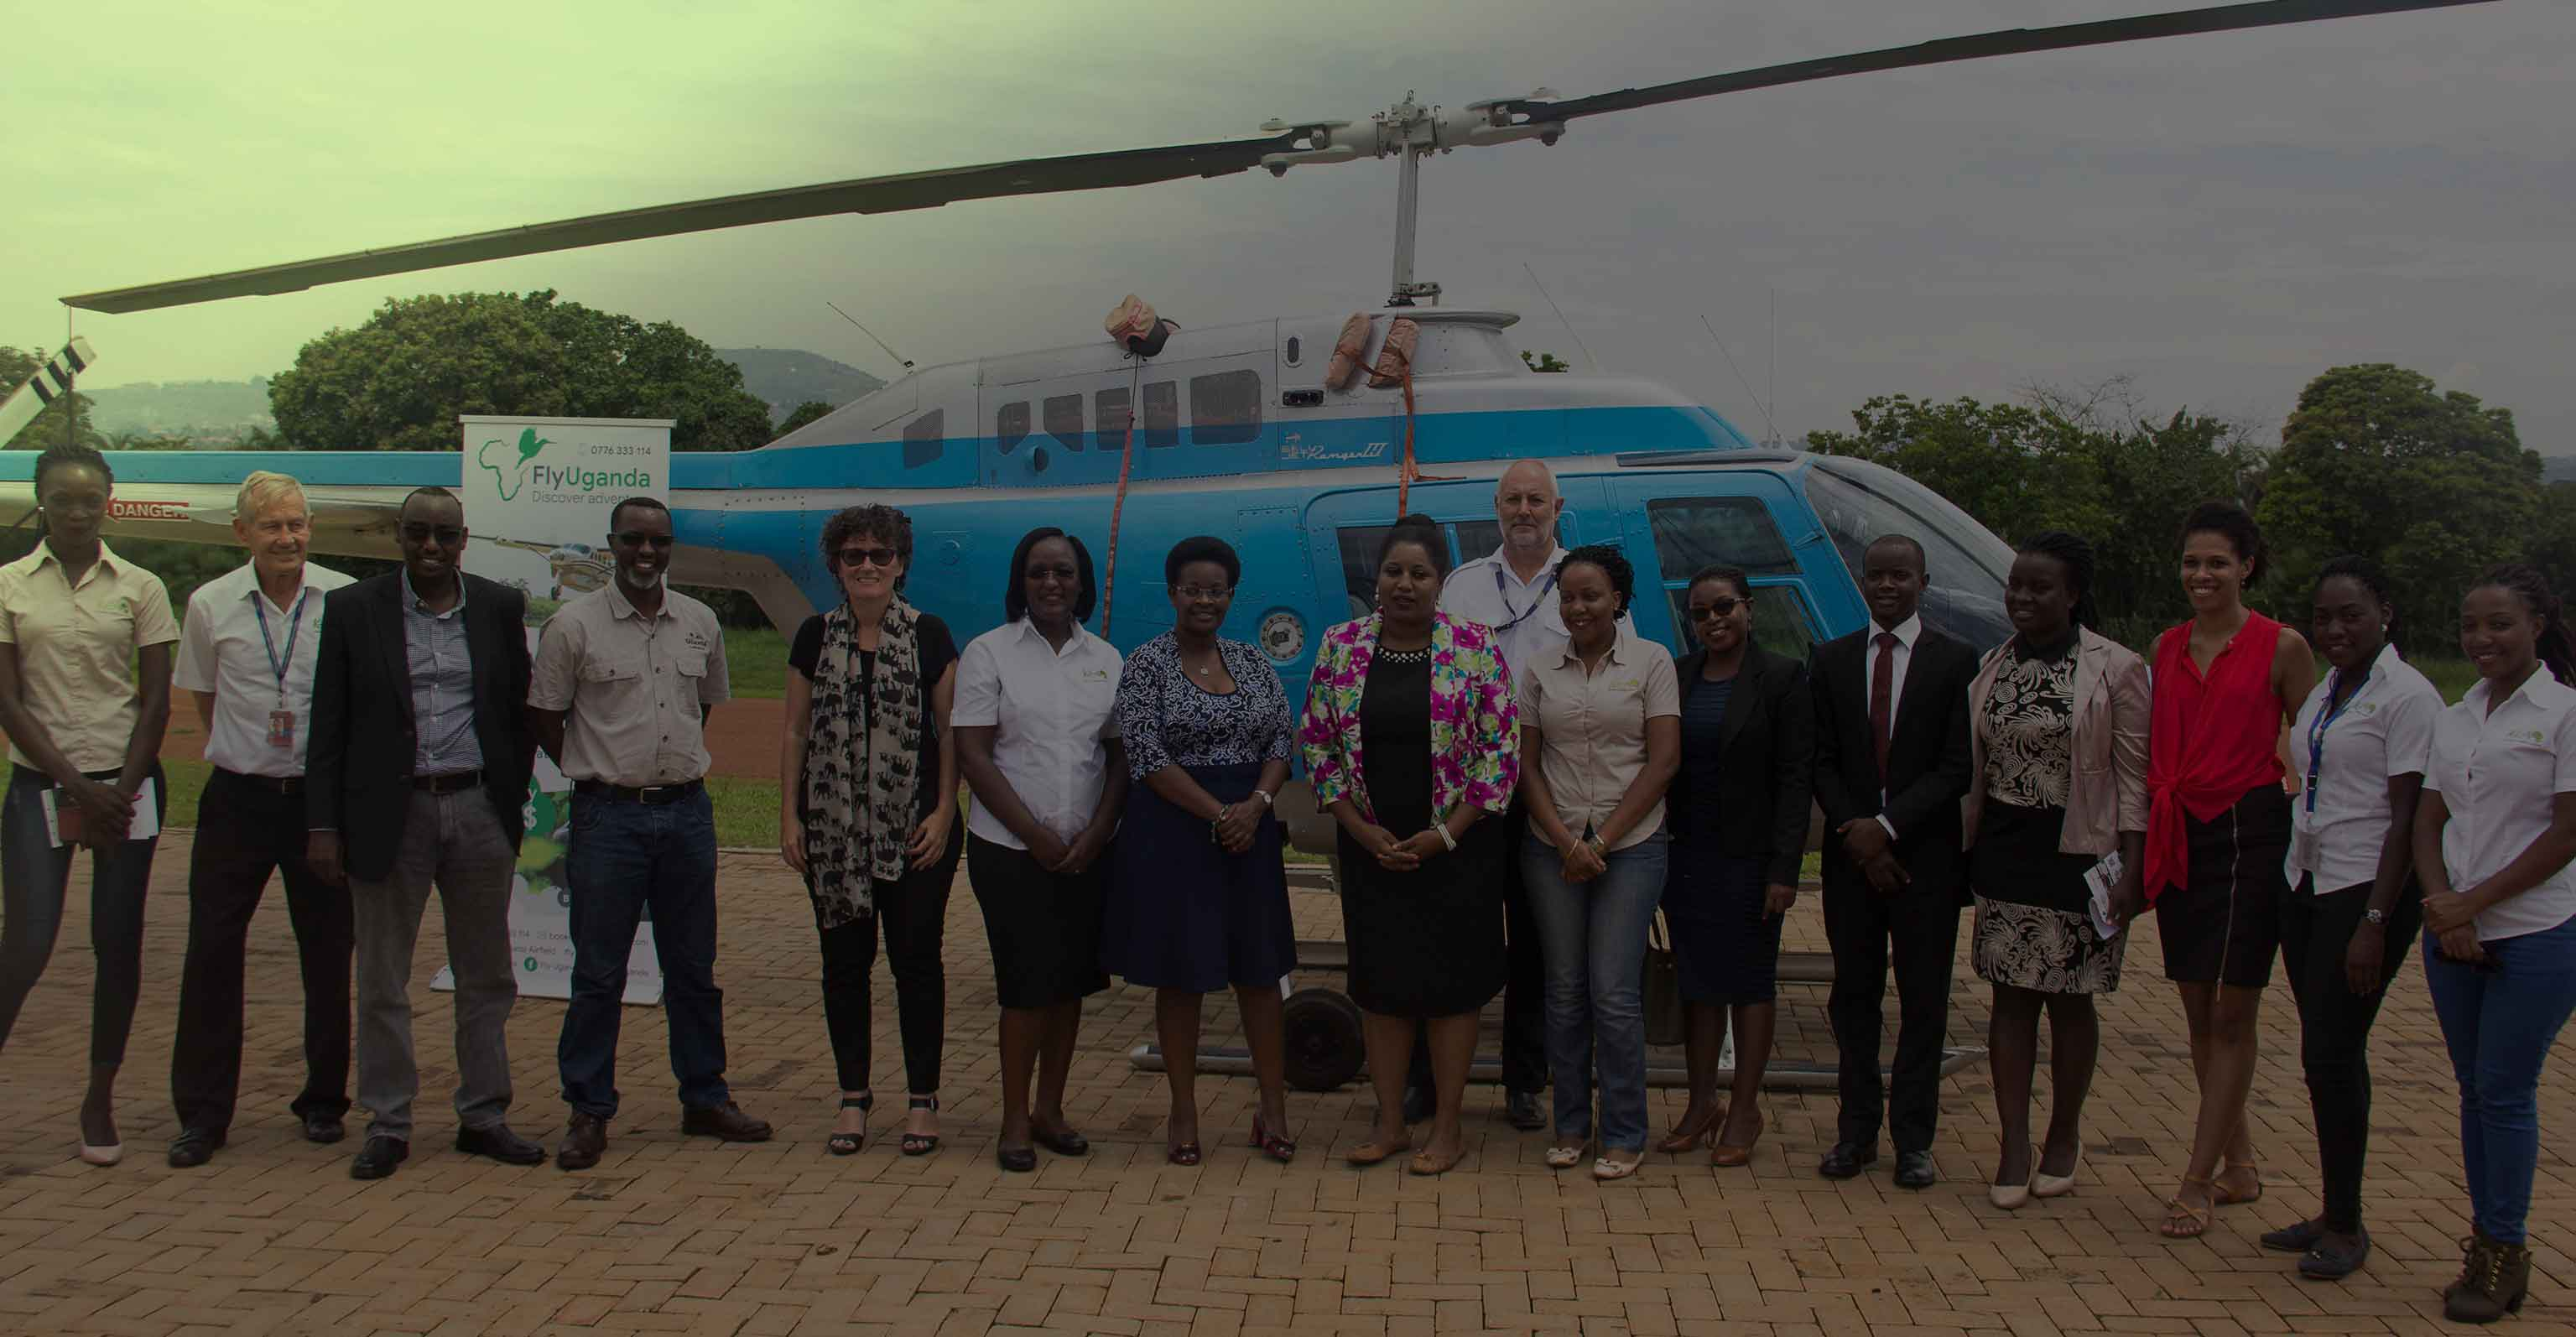 KEA launches FlyUganda Scheduled Flights